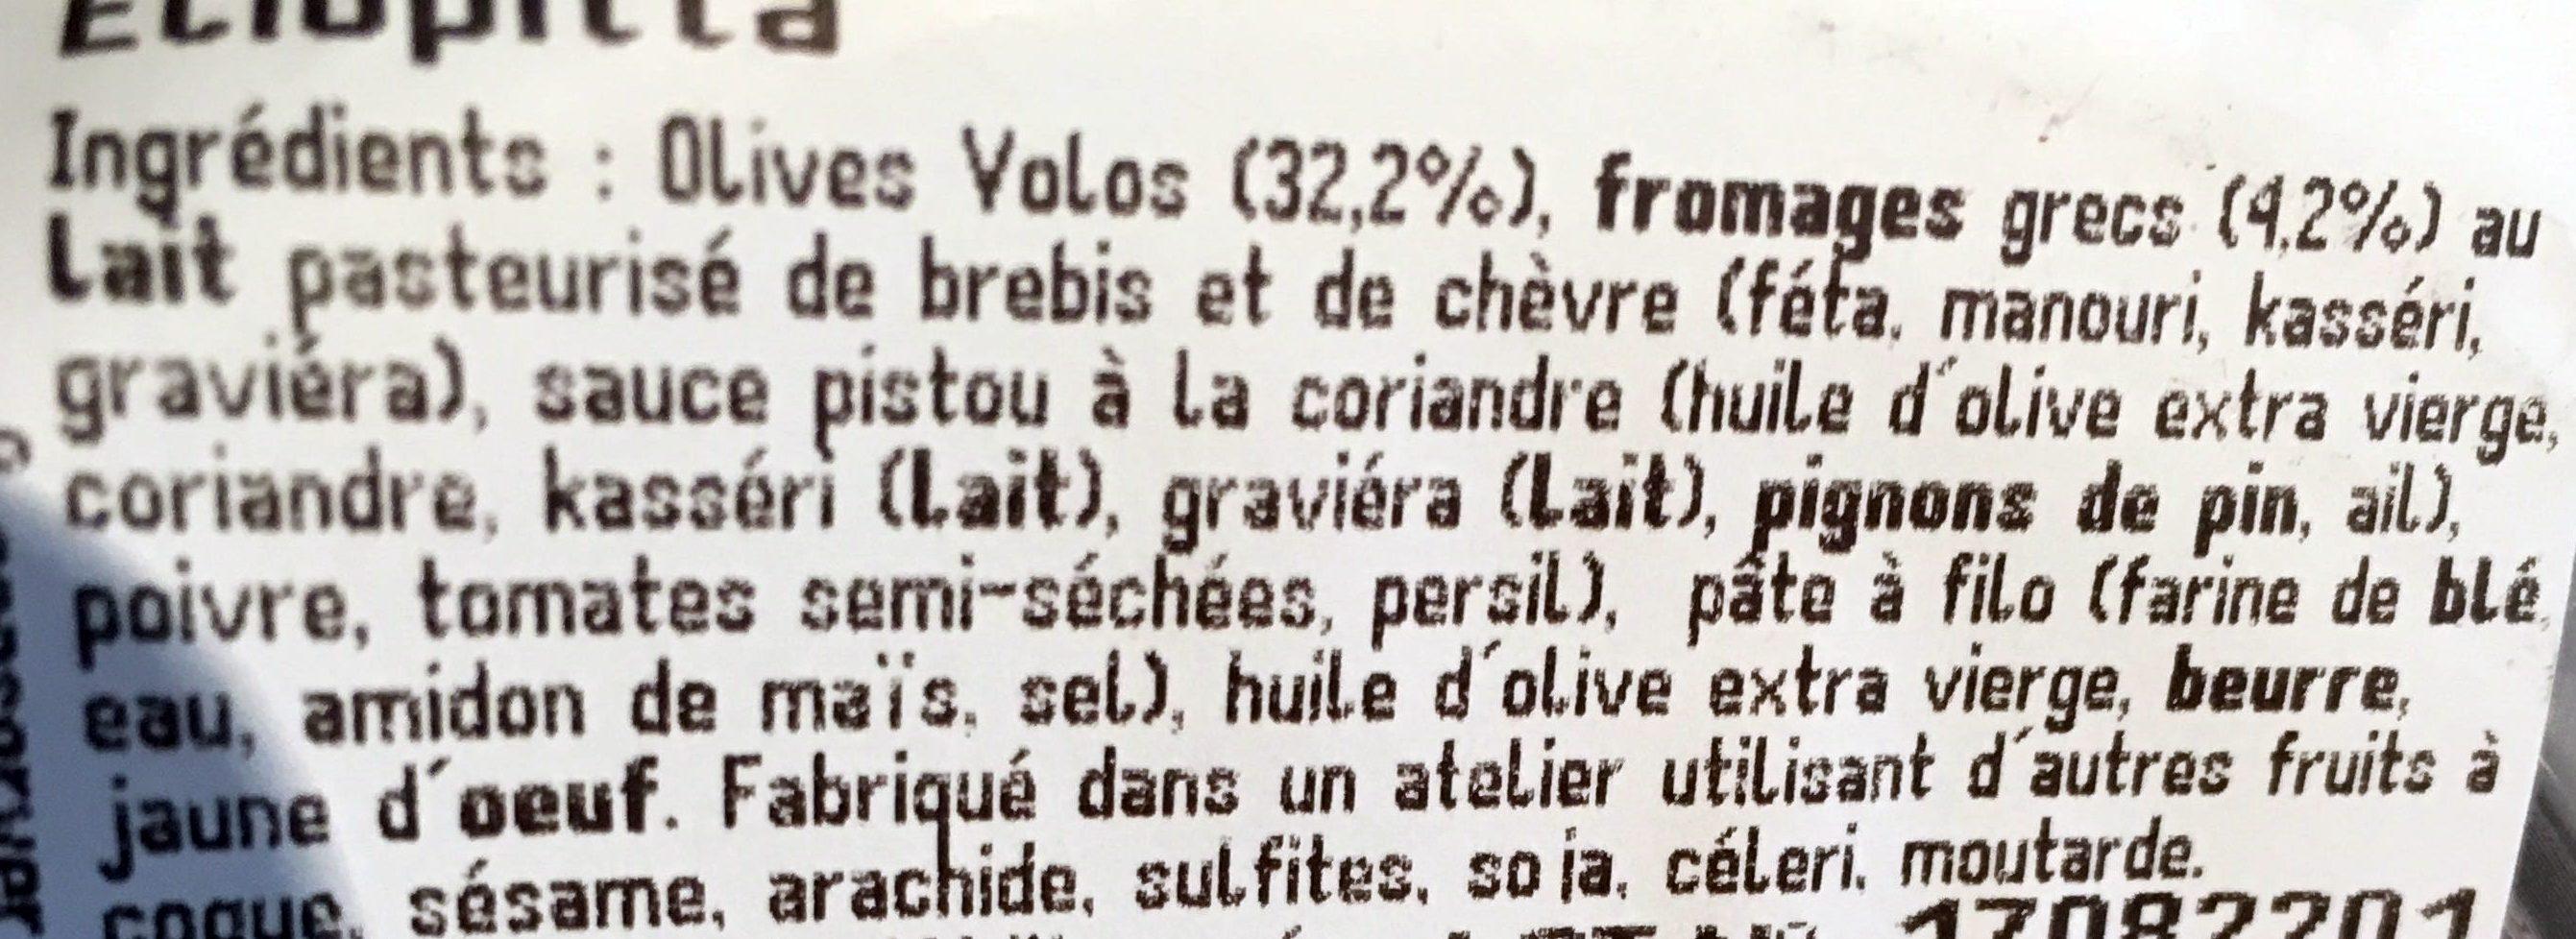 Eliopitta aux Olives - Ingredients